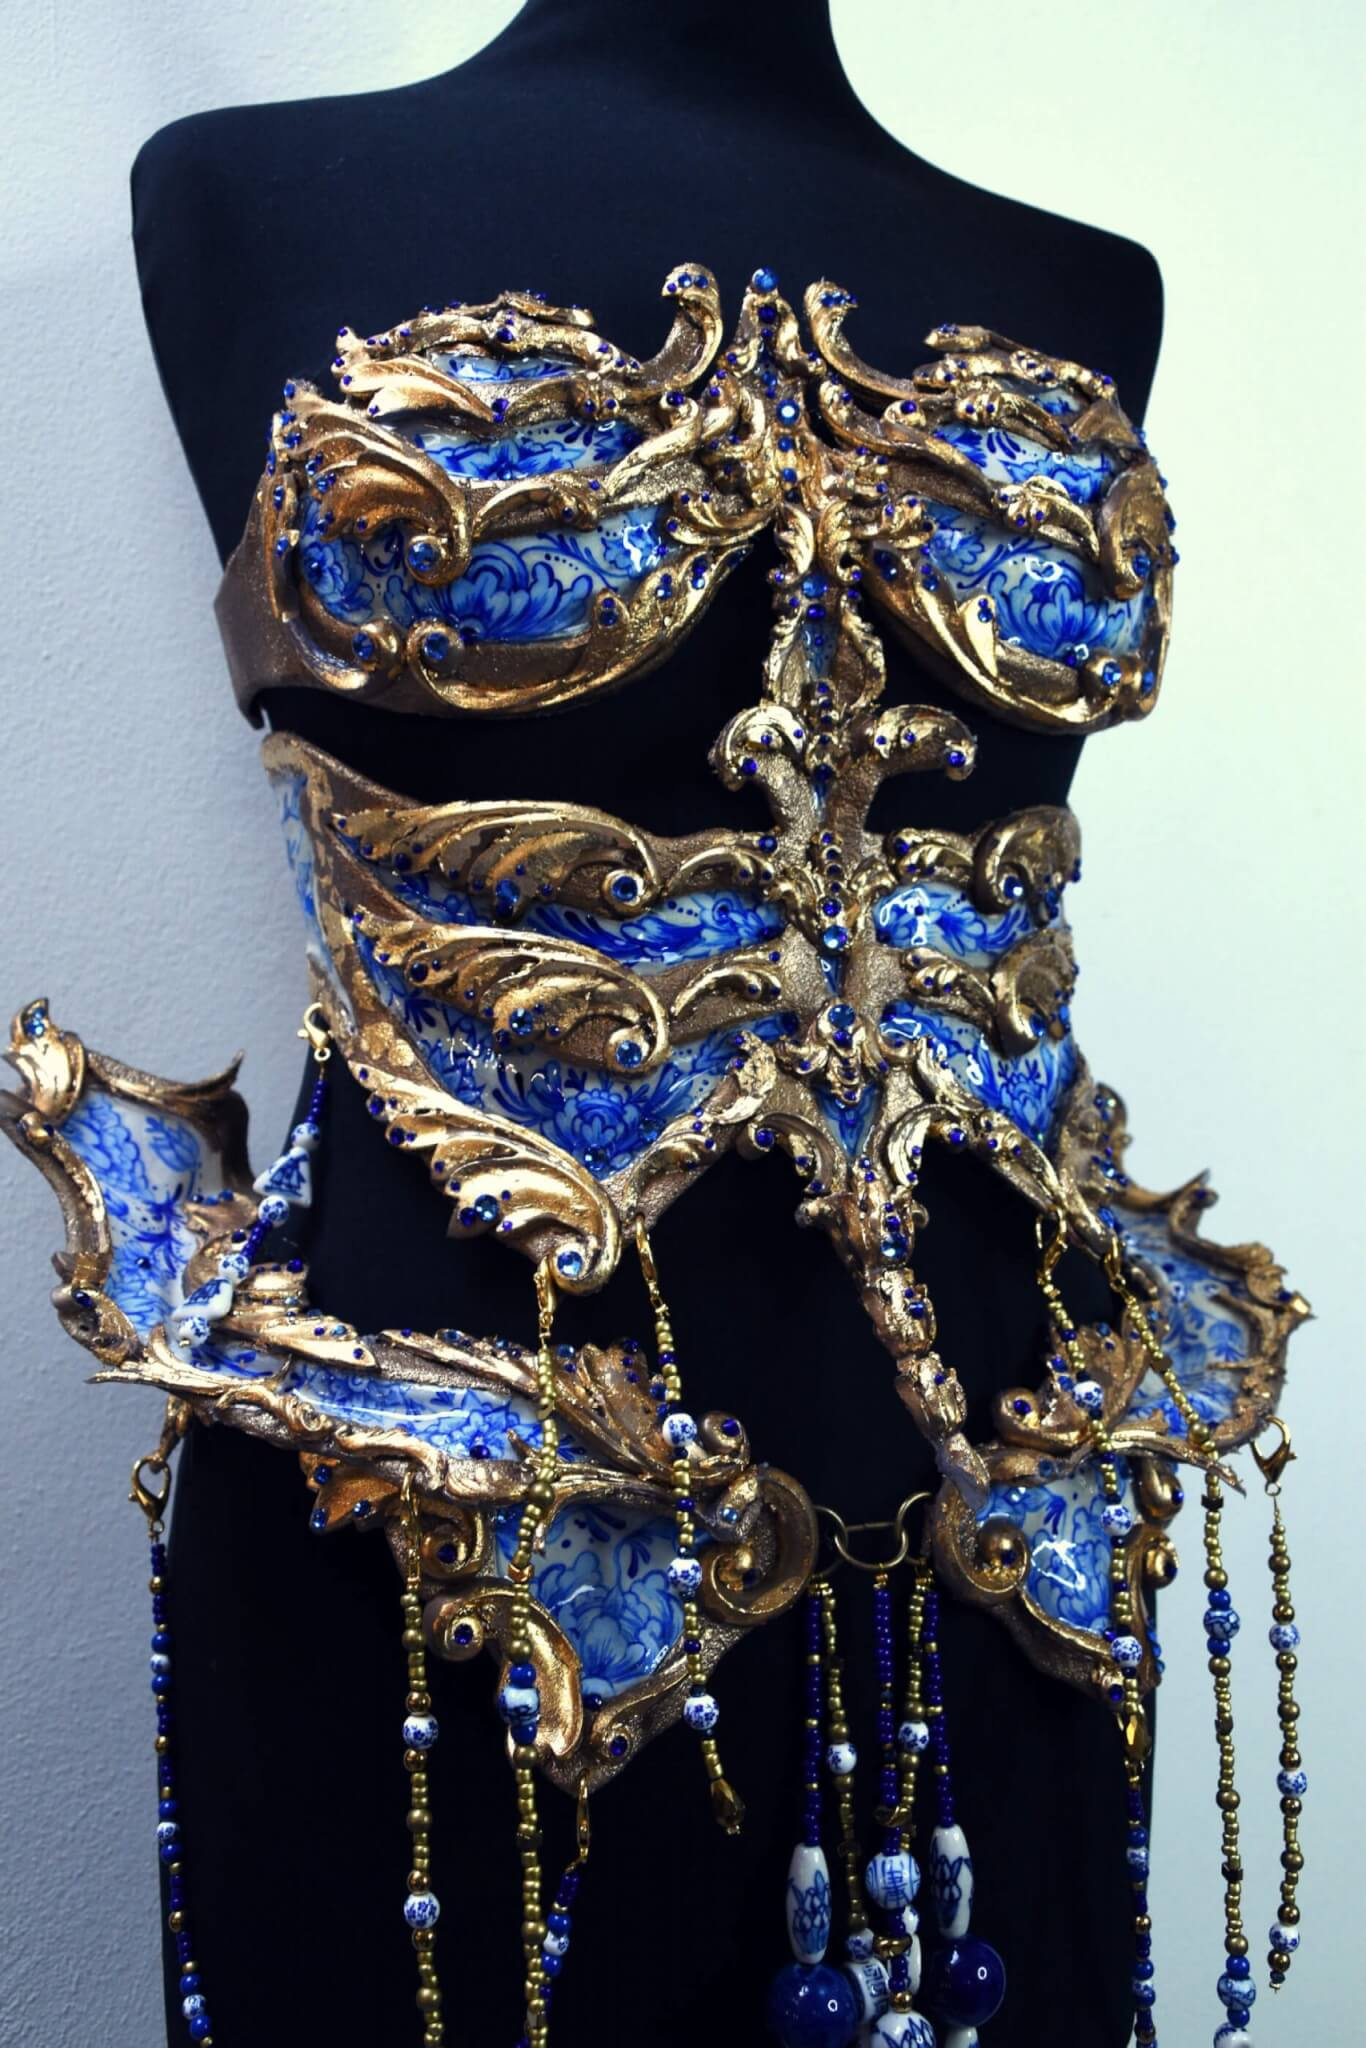 delft blue porcelain skull couture by joyce spakman, candy makeup artist